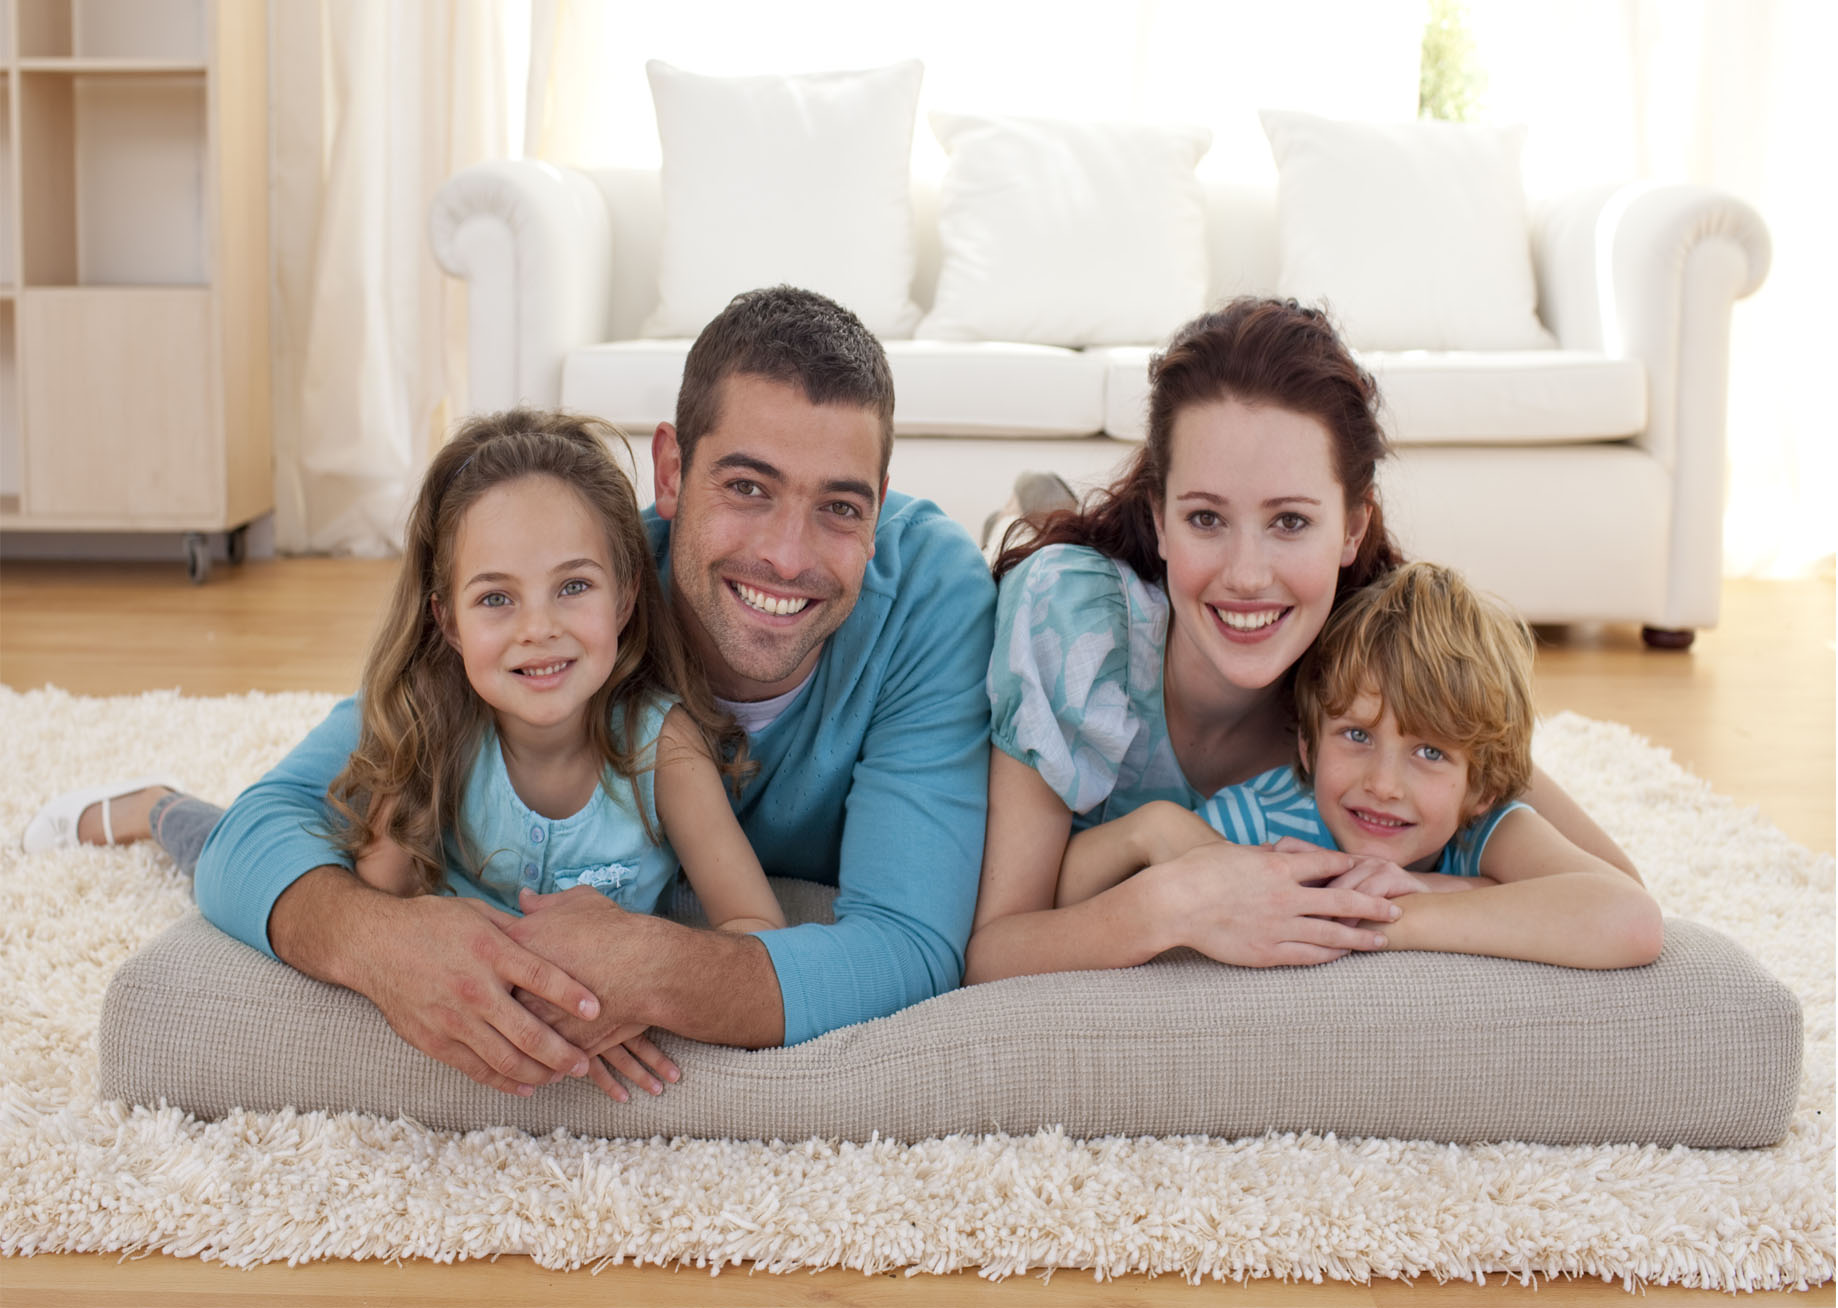 Carpet Cleaning & Upholstery Cleaning Tile & Wood Floors Air Ducts ...